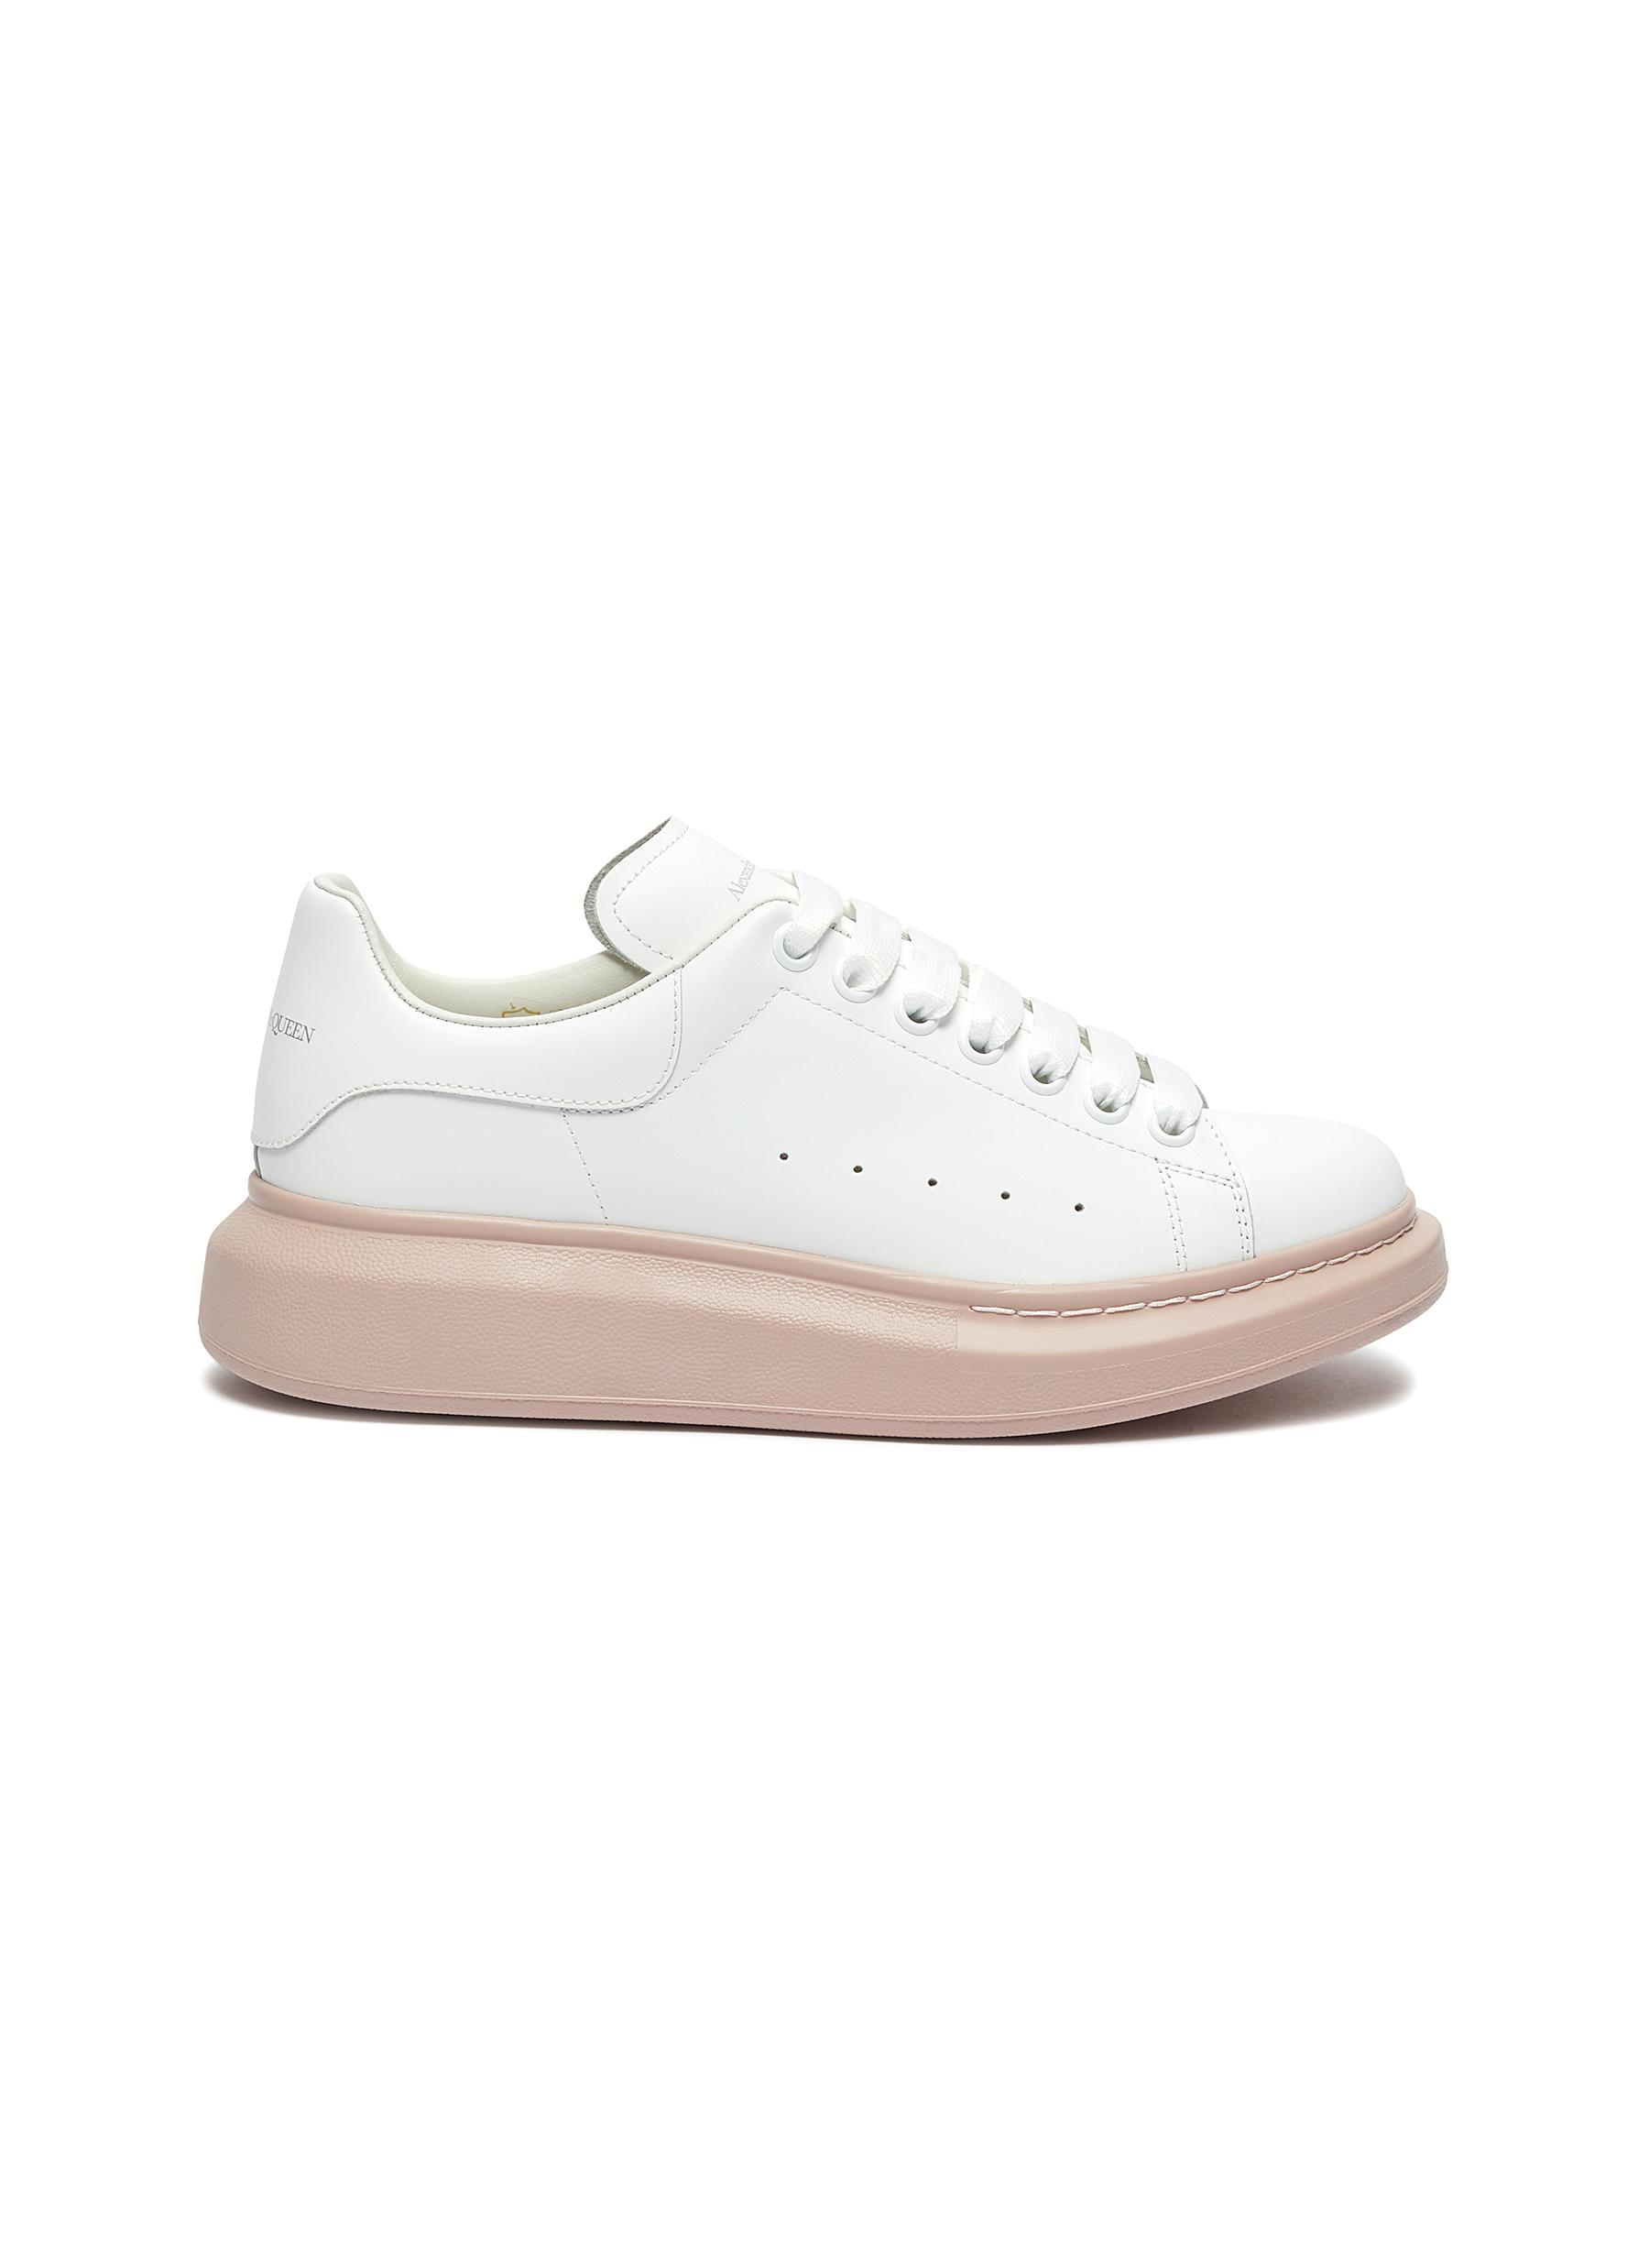 Oversized Sneaker in leather with contrast outsole by Alexander Mcqueen